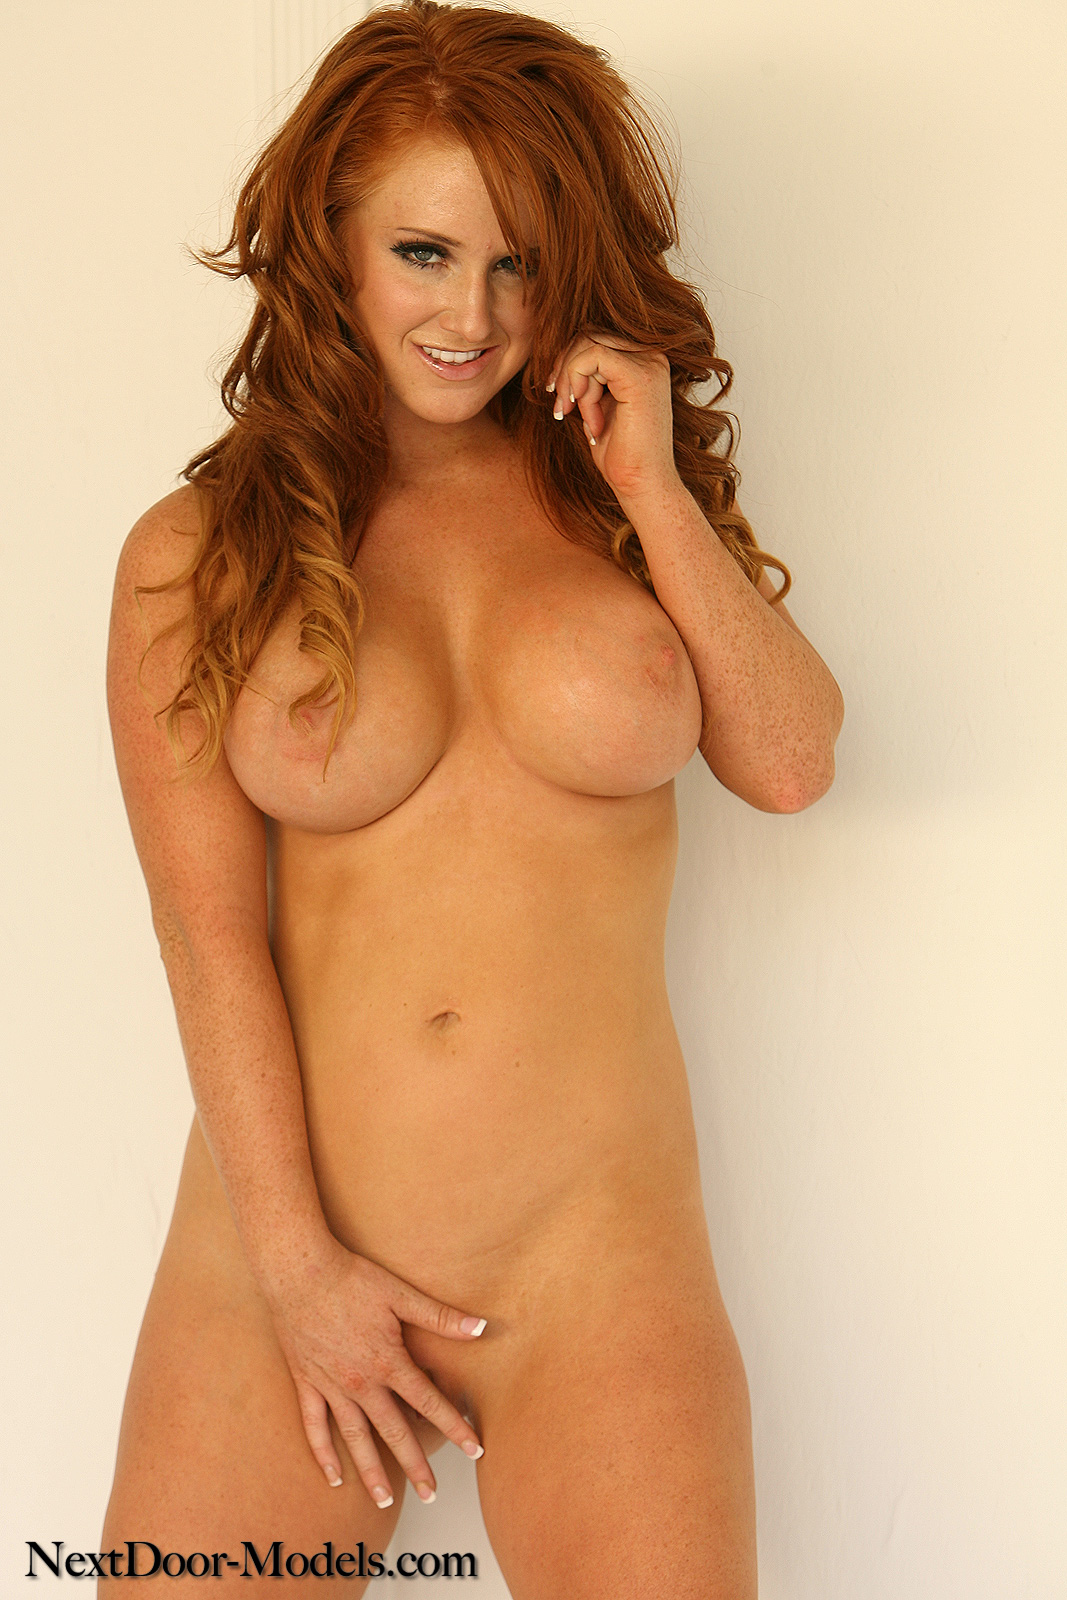 hot ginger women nude